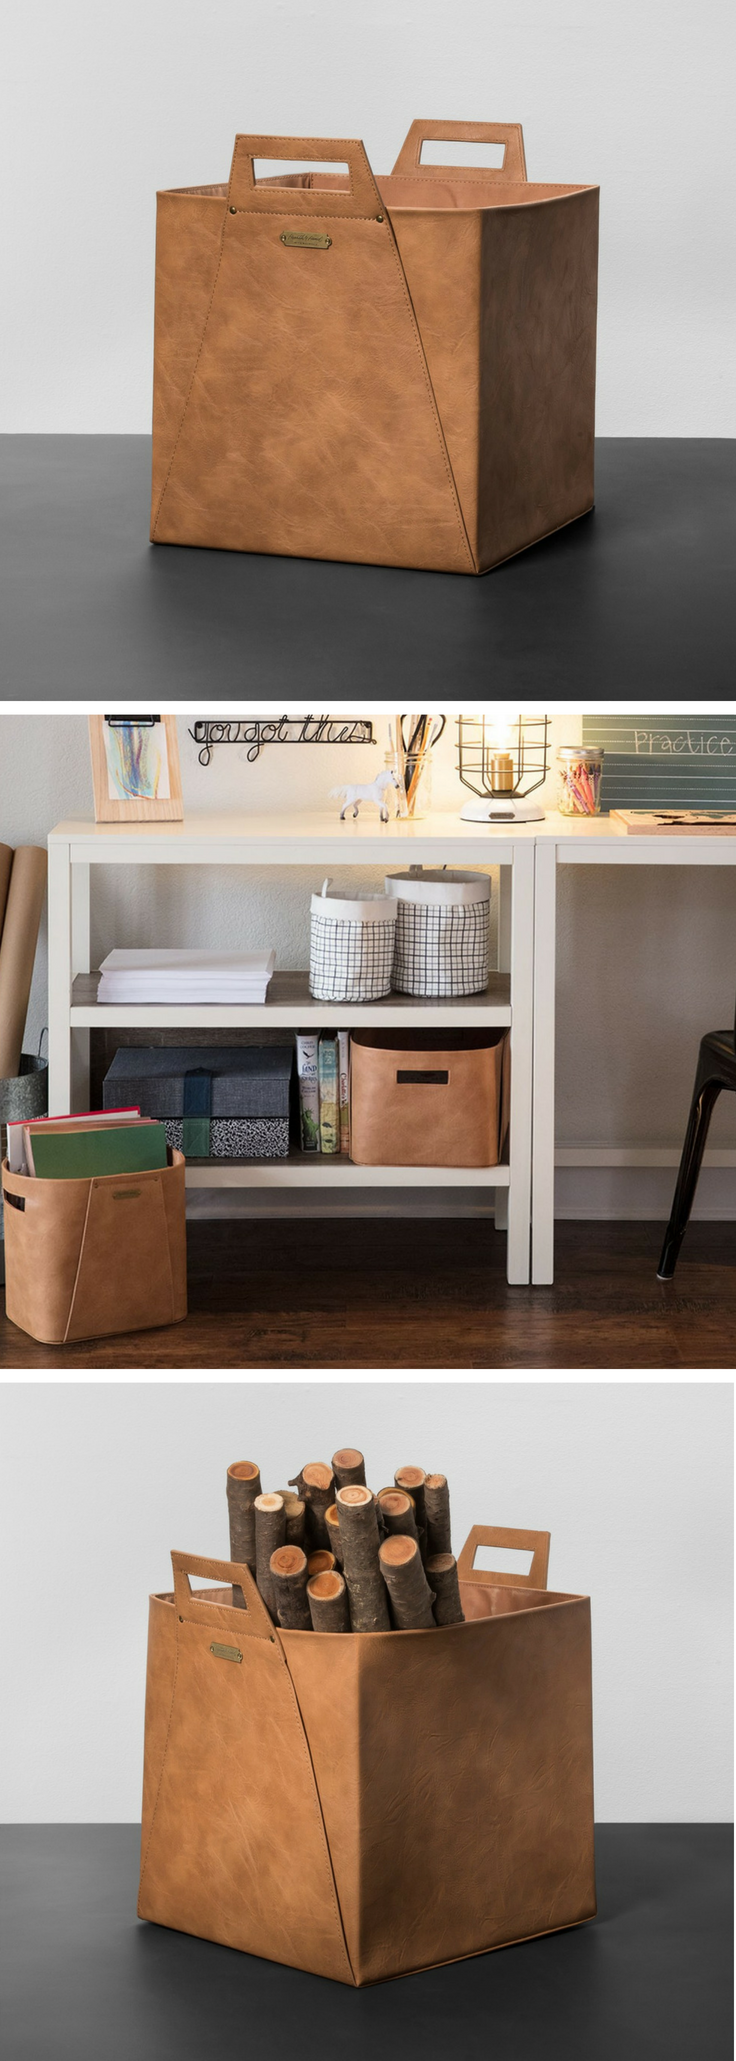 Hearth Hand With Magnolia By Joanna And Chip Gaines Leather Storage Bin Farmhouse Decor Storage Organiza Hearth Hand With Magnolia Storage Storage Bin